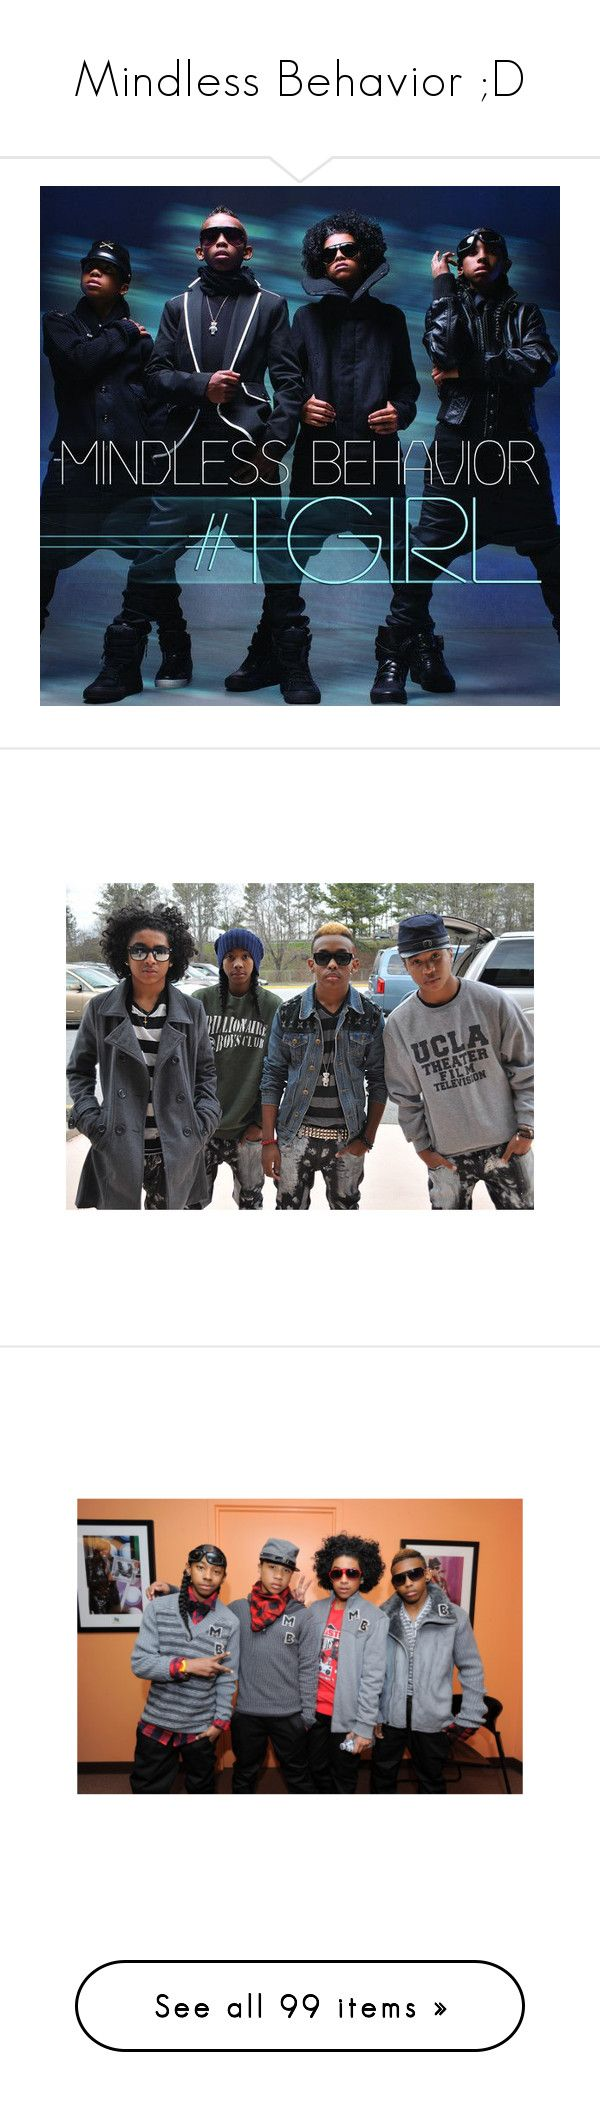 """Mindless Behavior ;D"" by andr3a-anon ❤ liked on Polyvore featuring mindless behavior, mb, pictures, people, pics, boys, omg girlz, home, home decor and accessories"